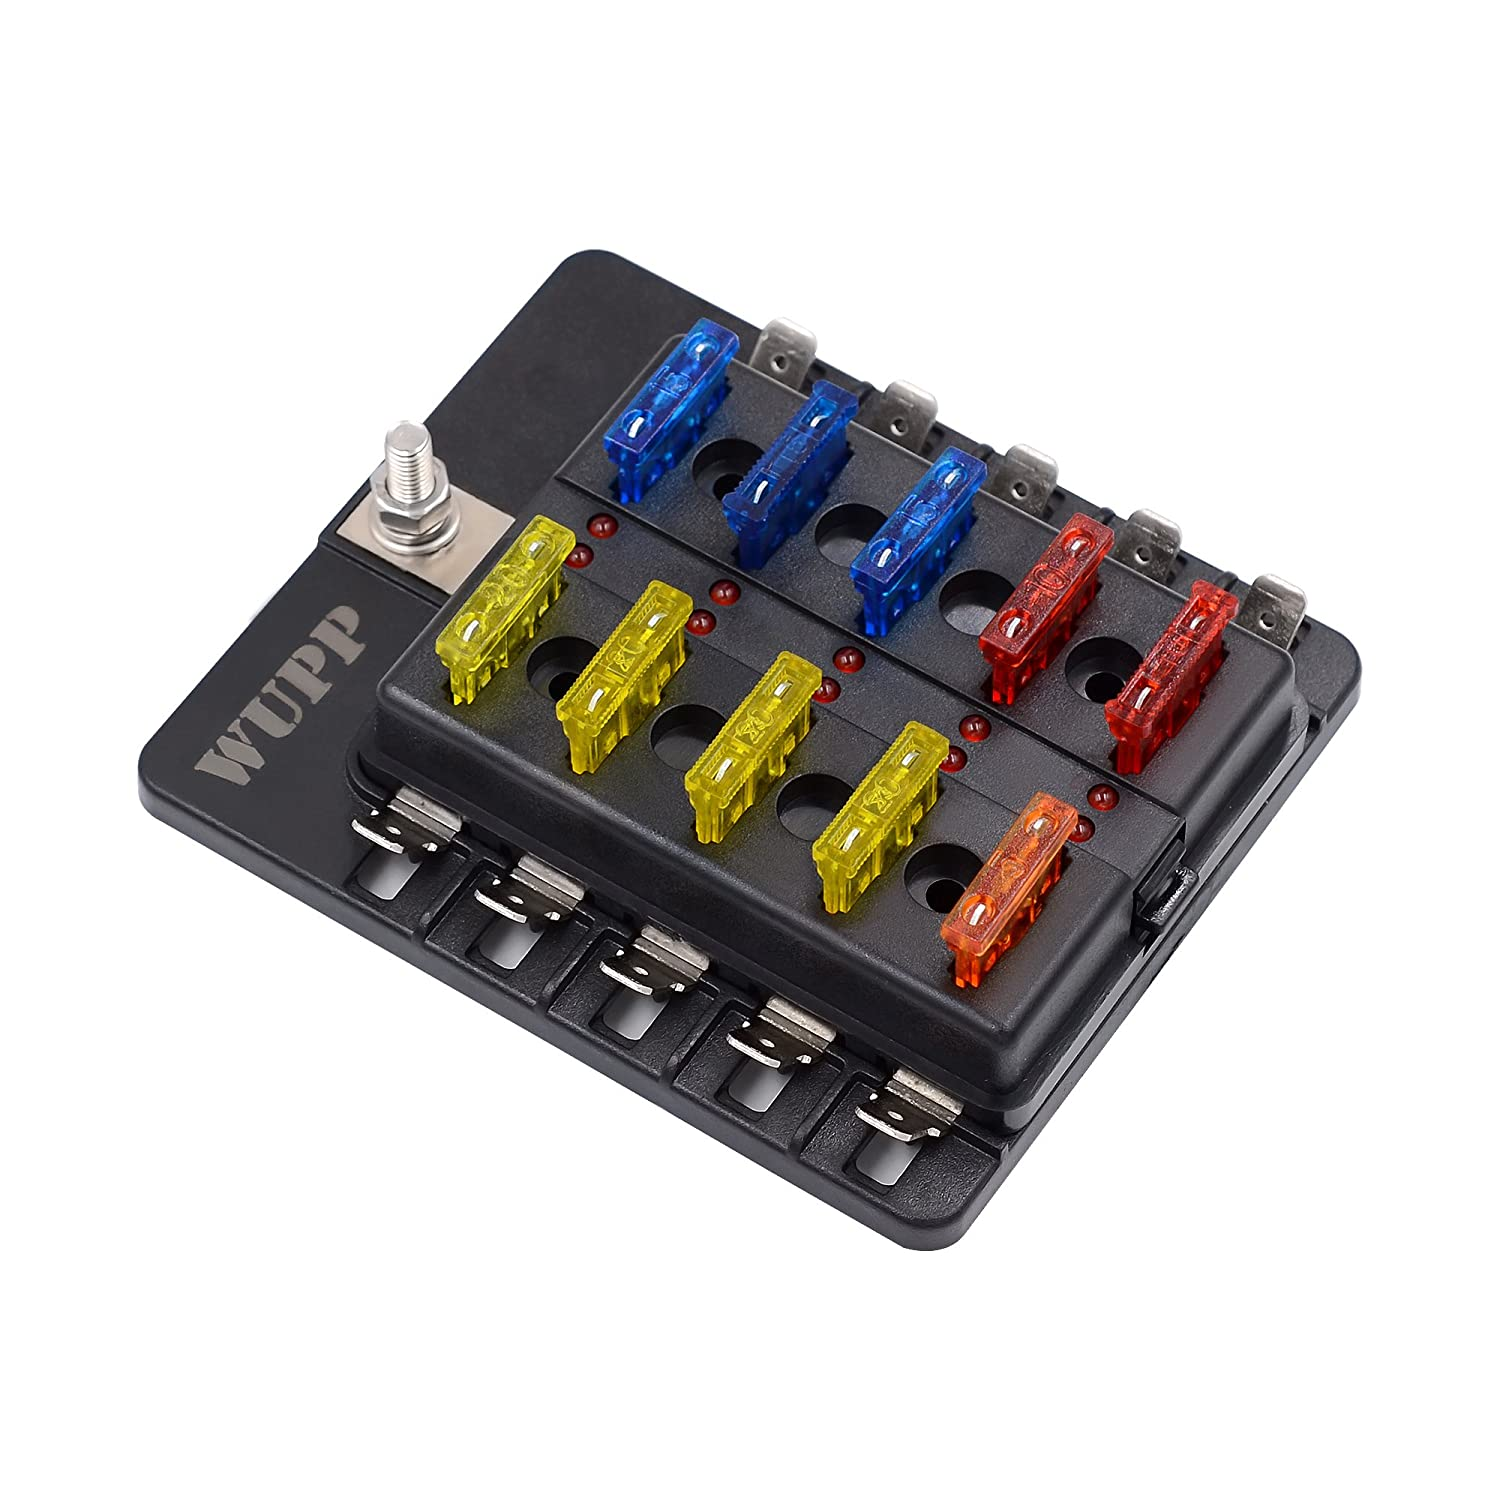 81ANoeiJKEL._SL1500_ amazon com blade fuse box holder with led light waterproof block Waterproof Fuse Holder at creativeand.co